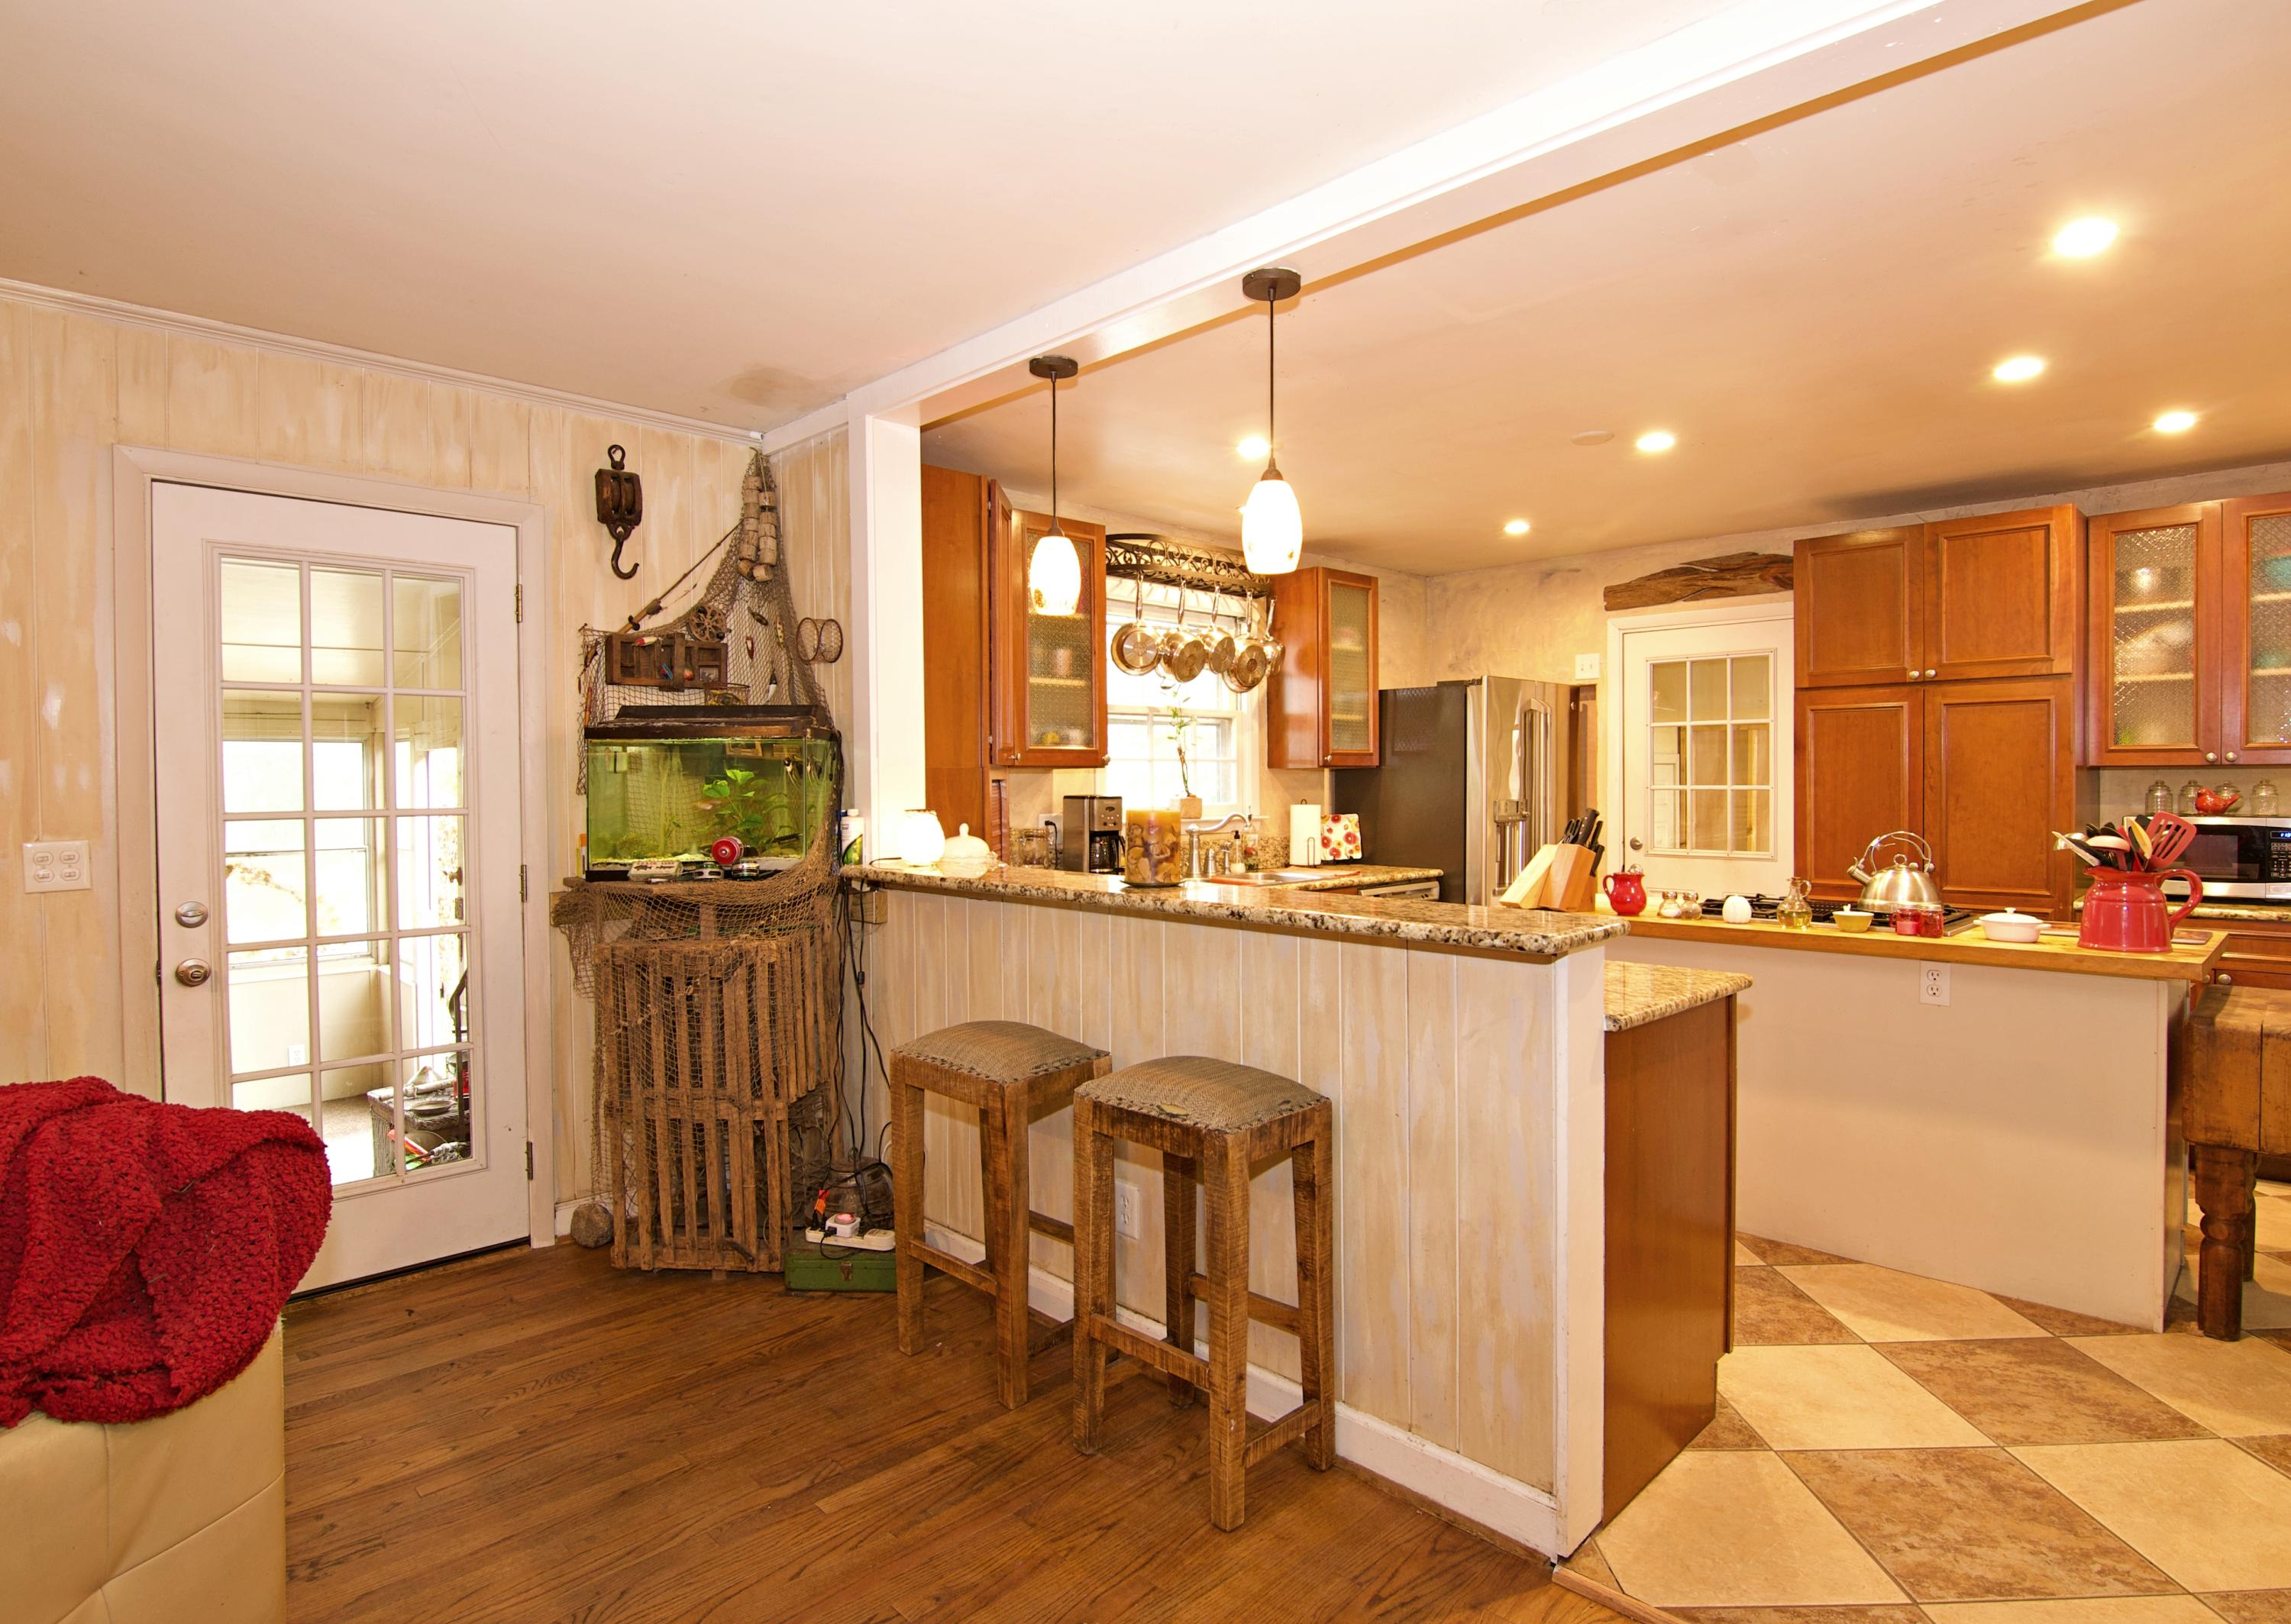 Drayton On The Ashley Homes For Sale - 2331 Wofford, Charleston, SC - 13